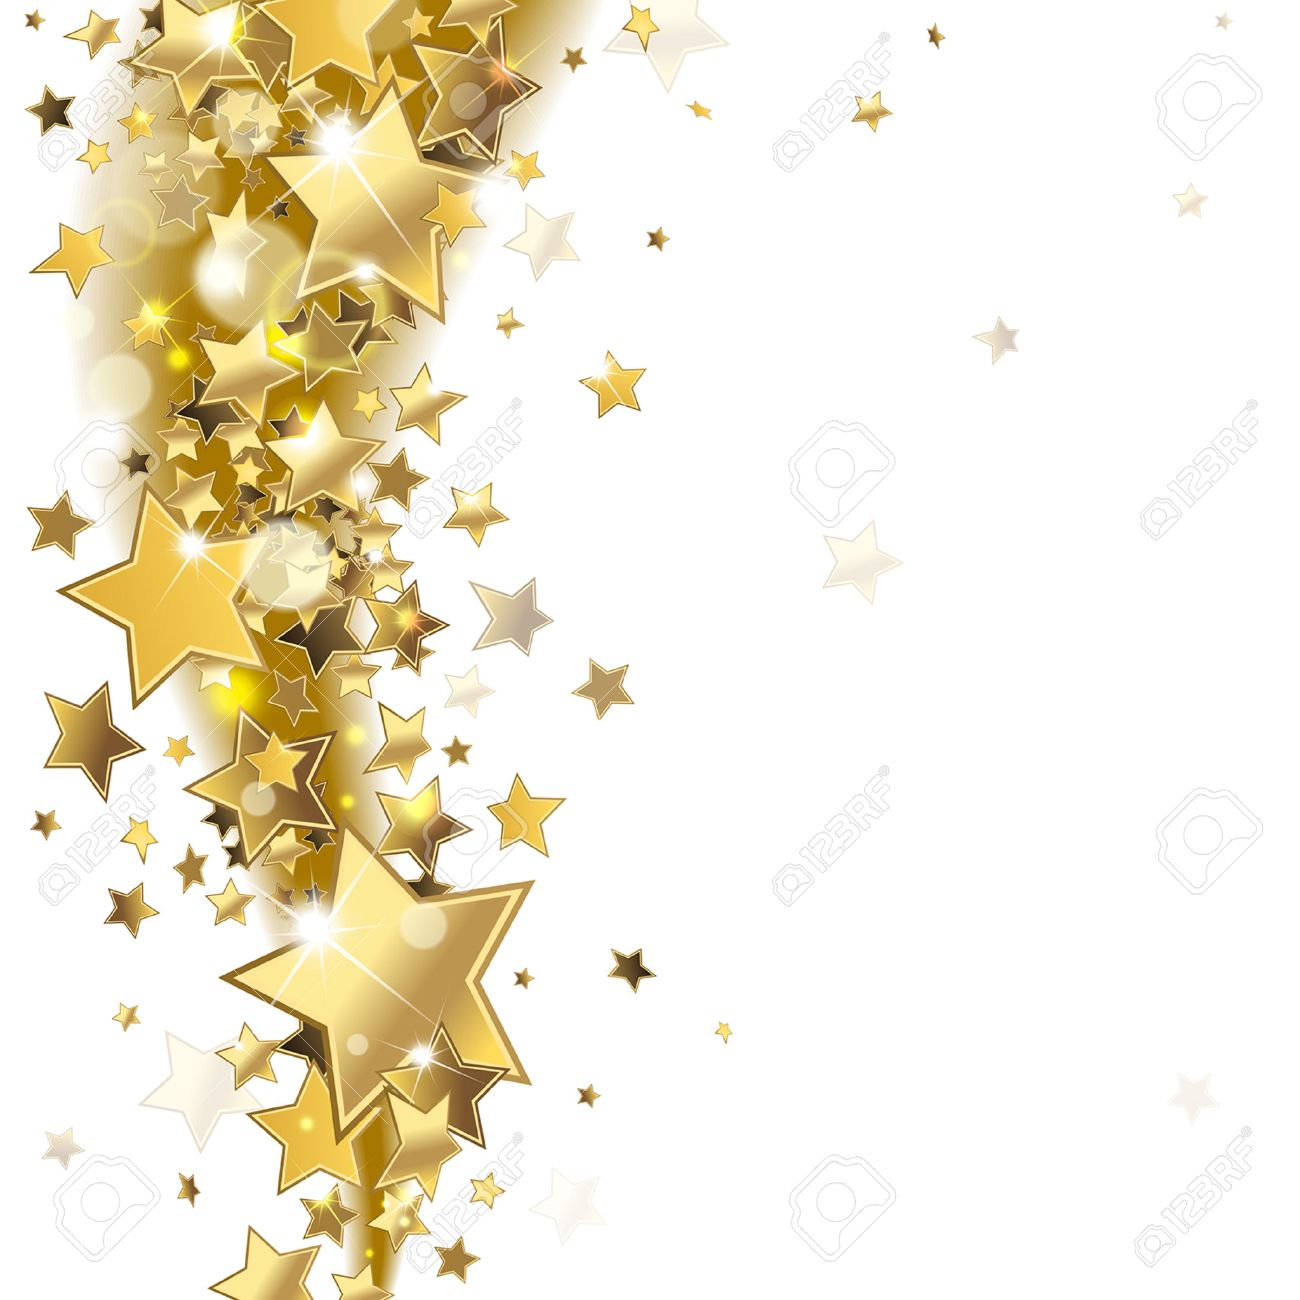 Beautiful gold star award template pictures inspiration example gold star certificate template image collections certificate alramifo Image collections